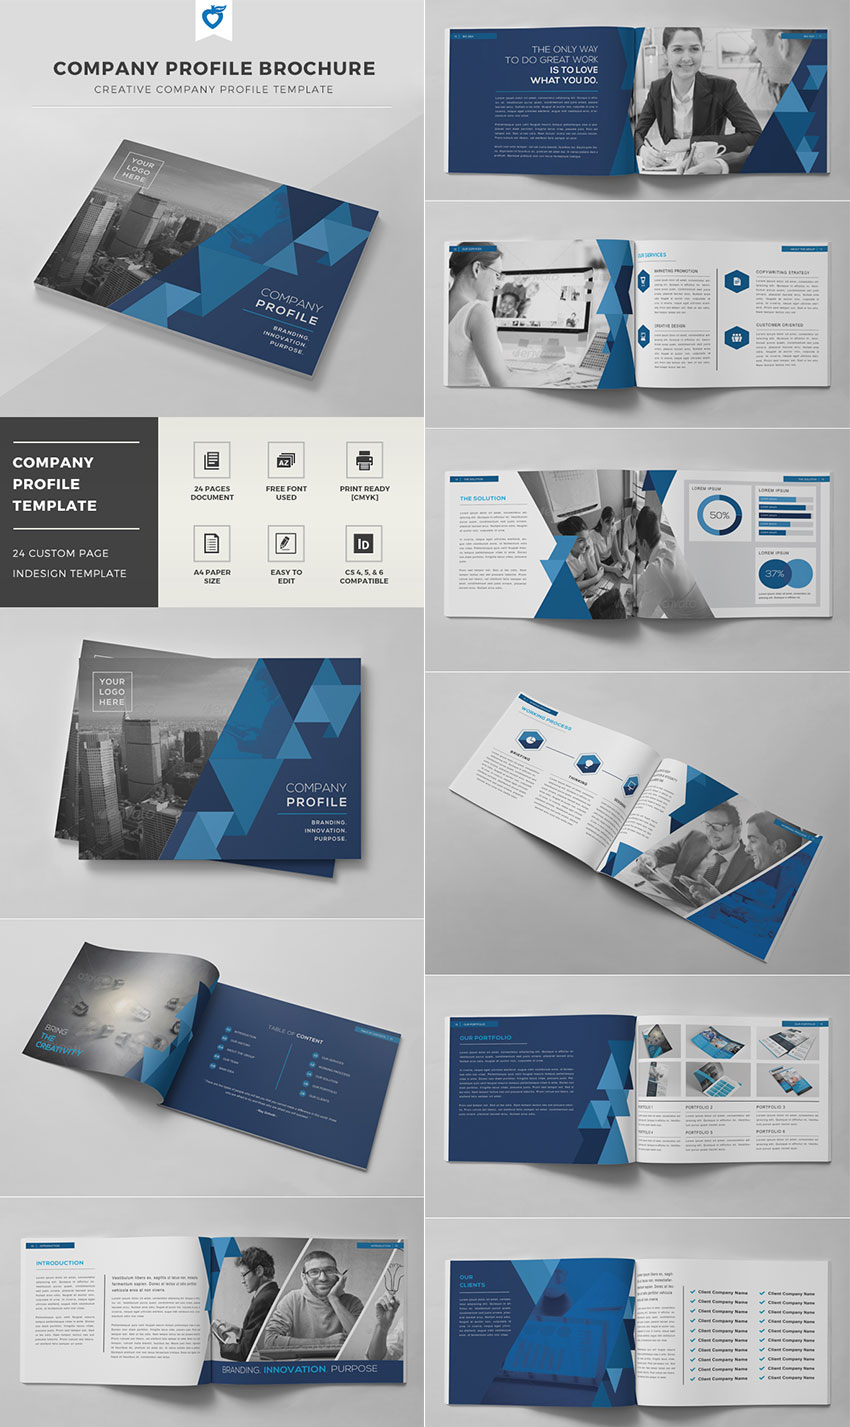 20 best indesign brochure templates for creative business marketing company profile brochure indd template wajeb Image collections